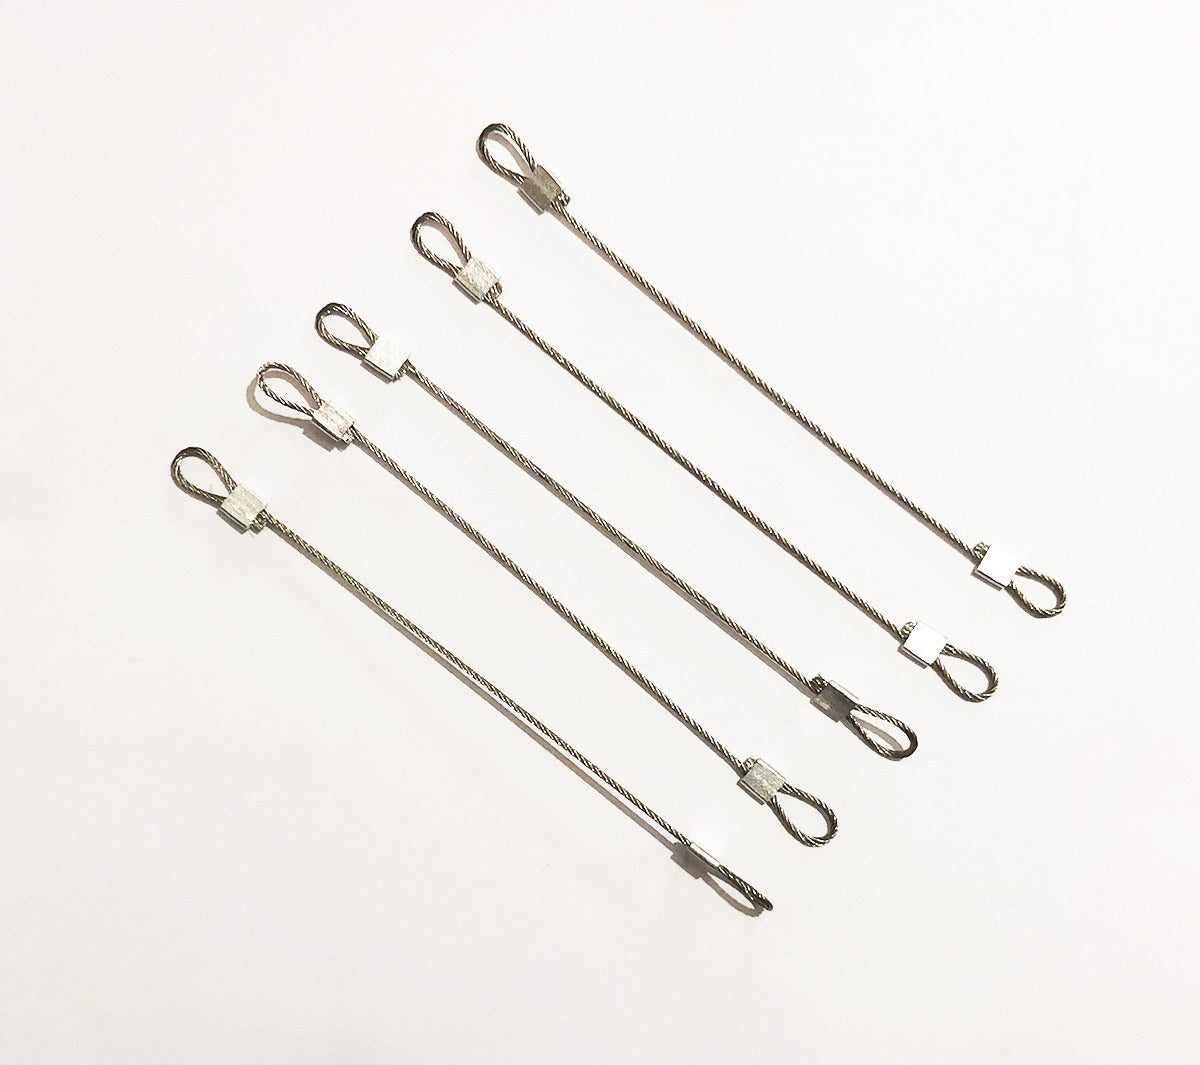 Sunny Hill Pack of 5 Steel Wire Crossbow Strings for Mini Crossbow Length 4.4 inches